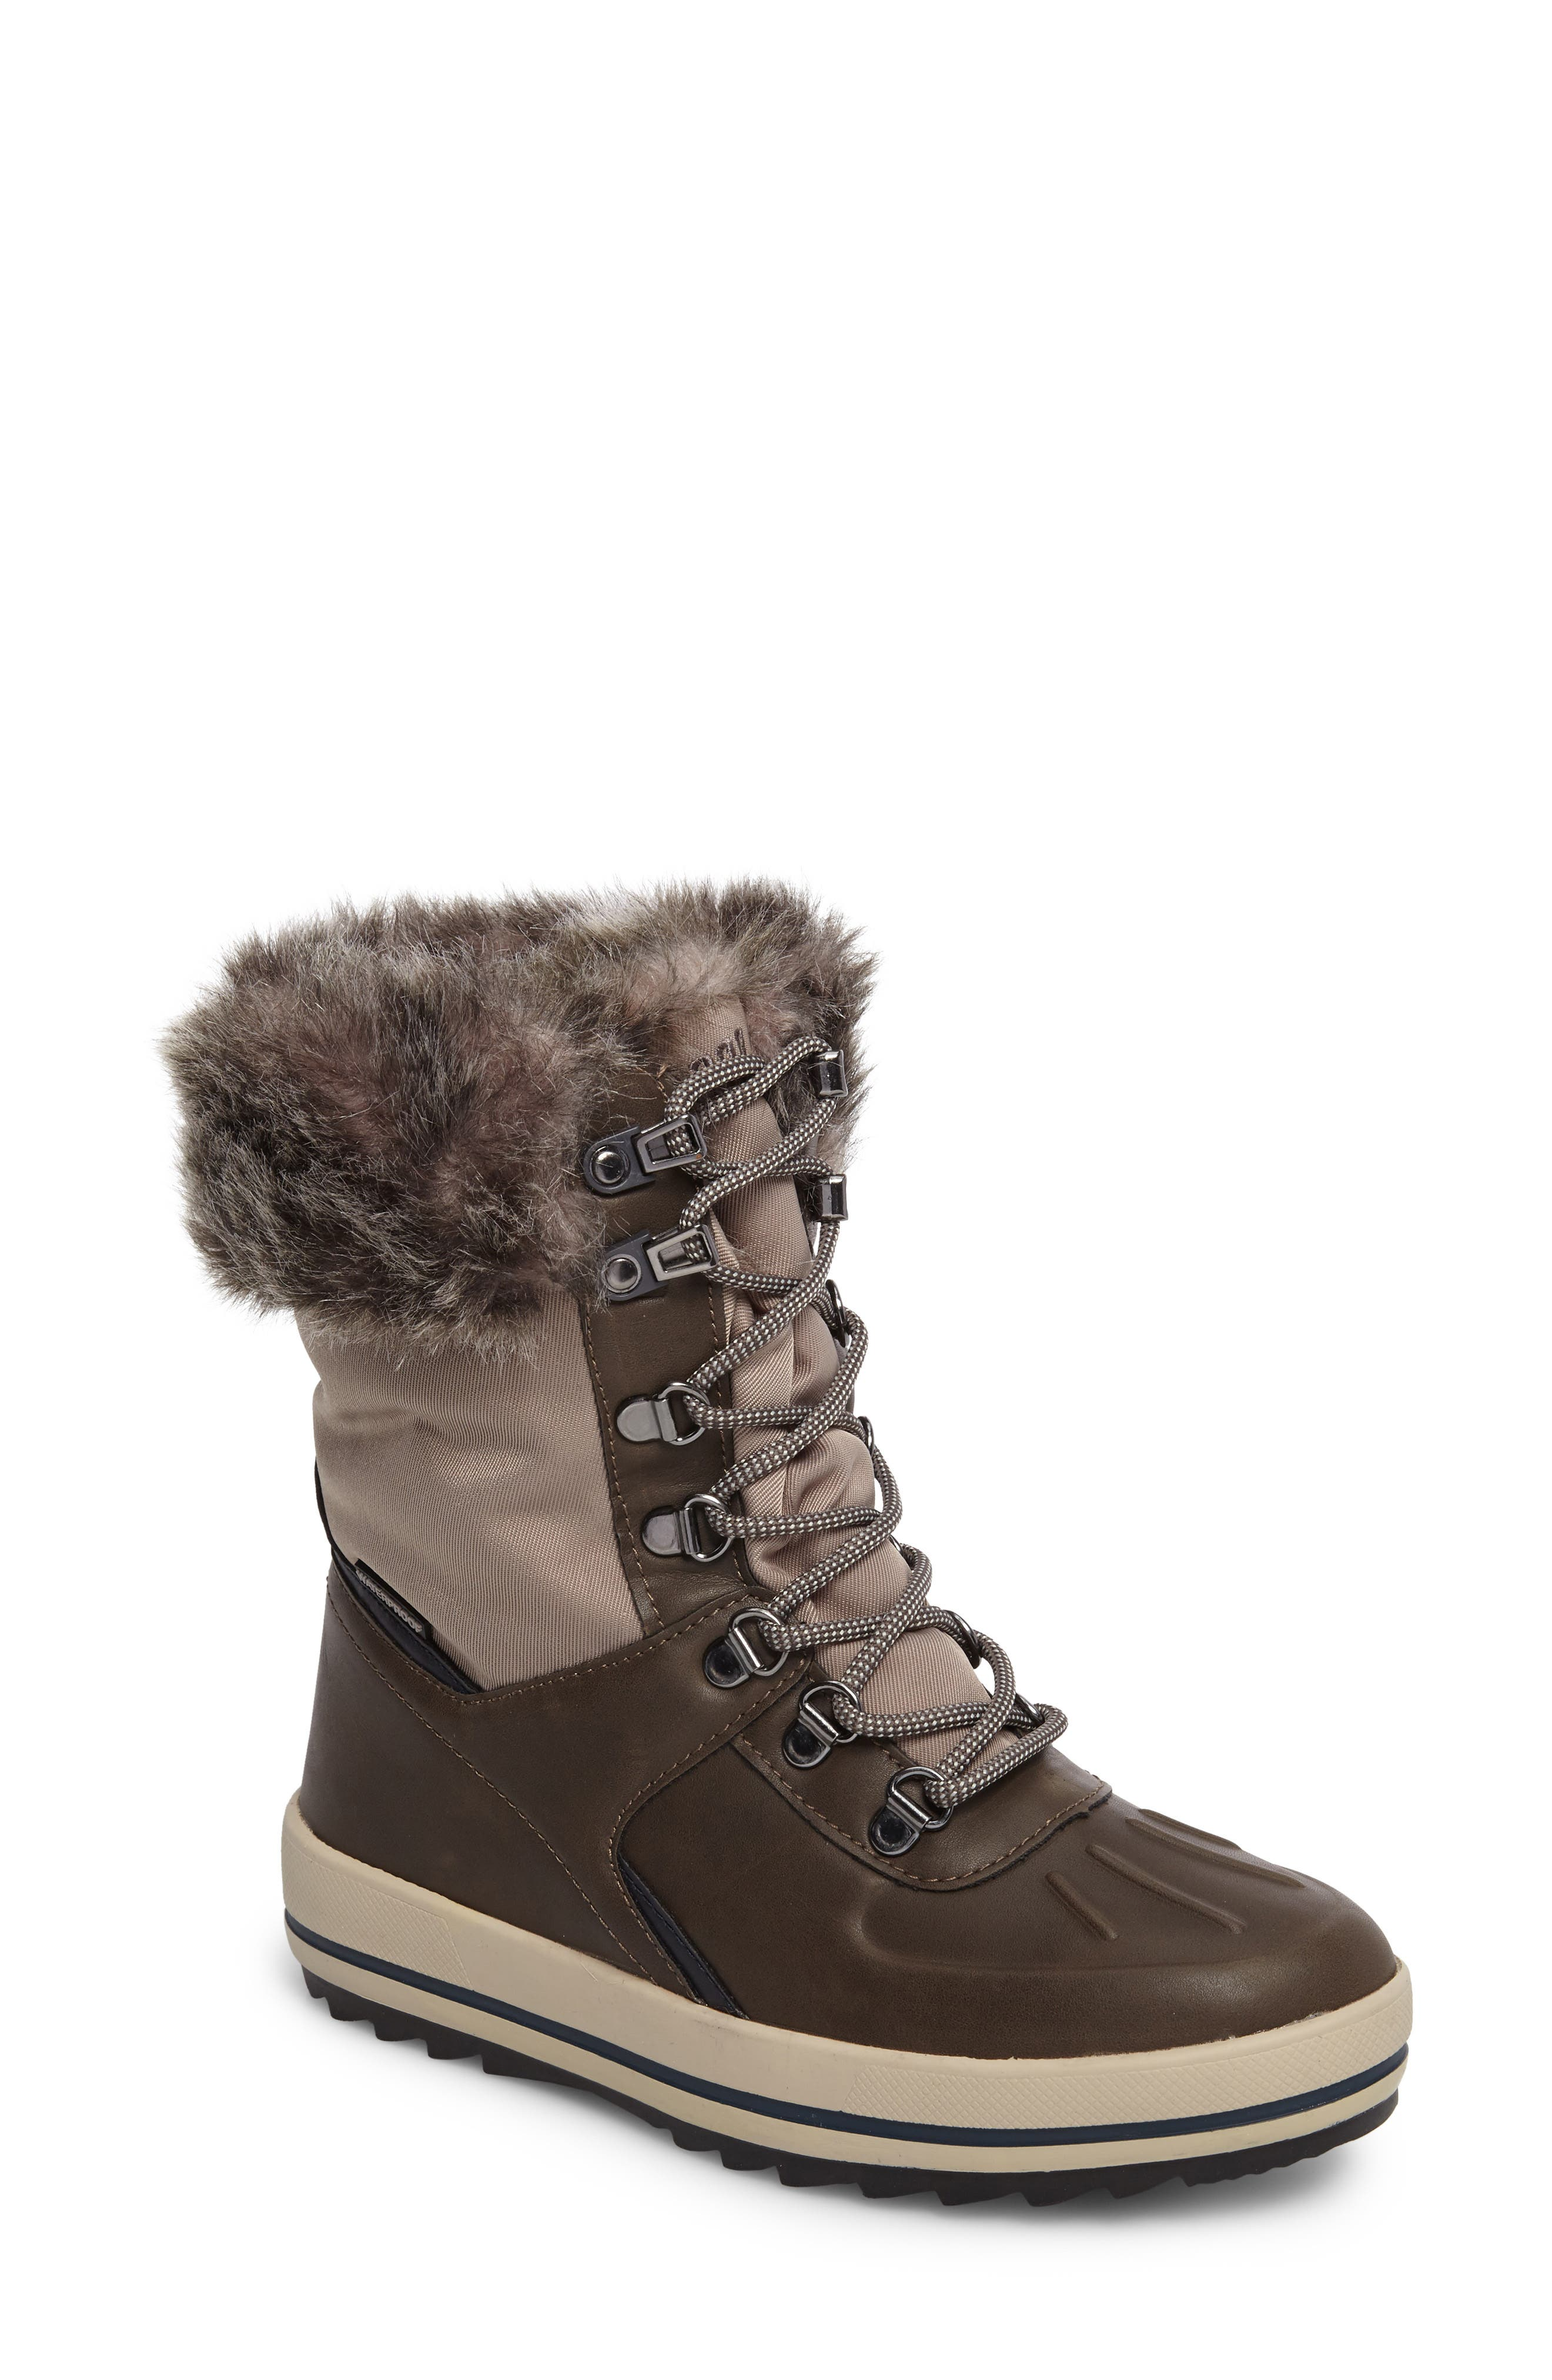 Cougar Viper Waterproof Snow Boot with Faux Fur Trim (Women)